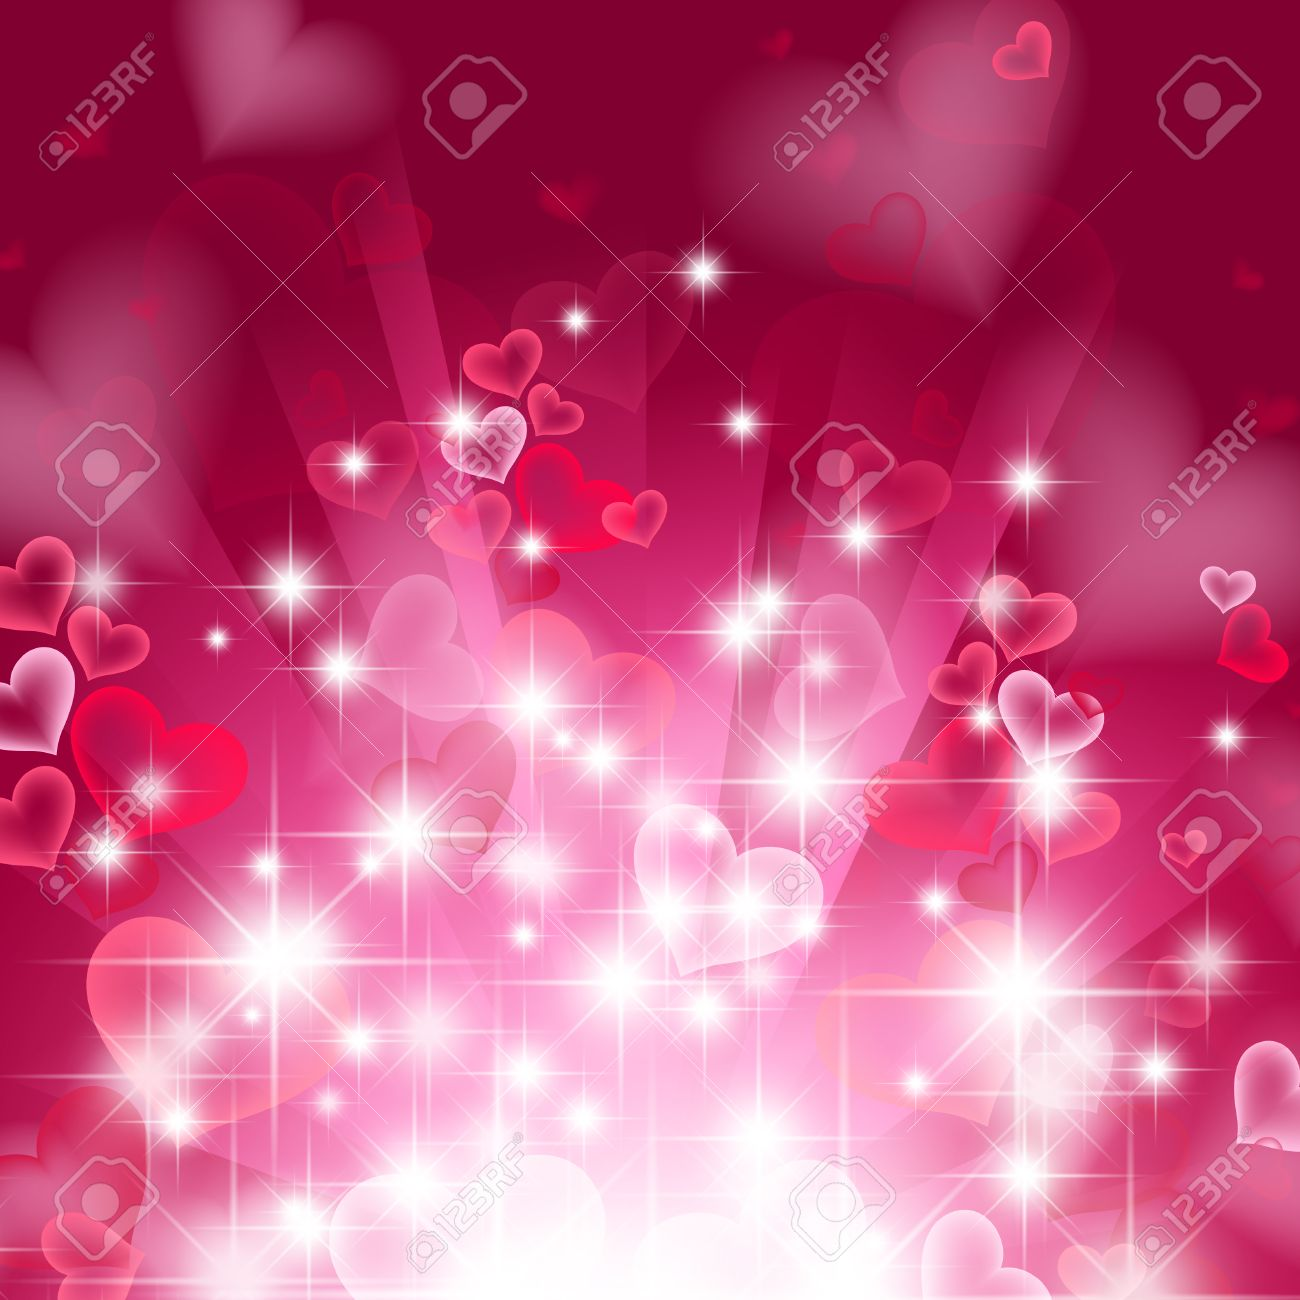 love bright theme with hearts and stars - 8193472